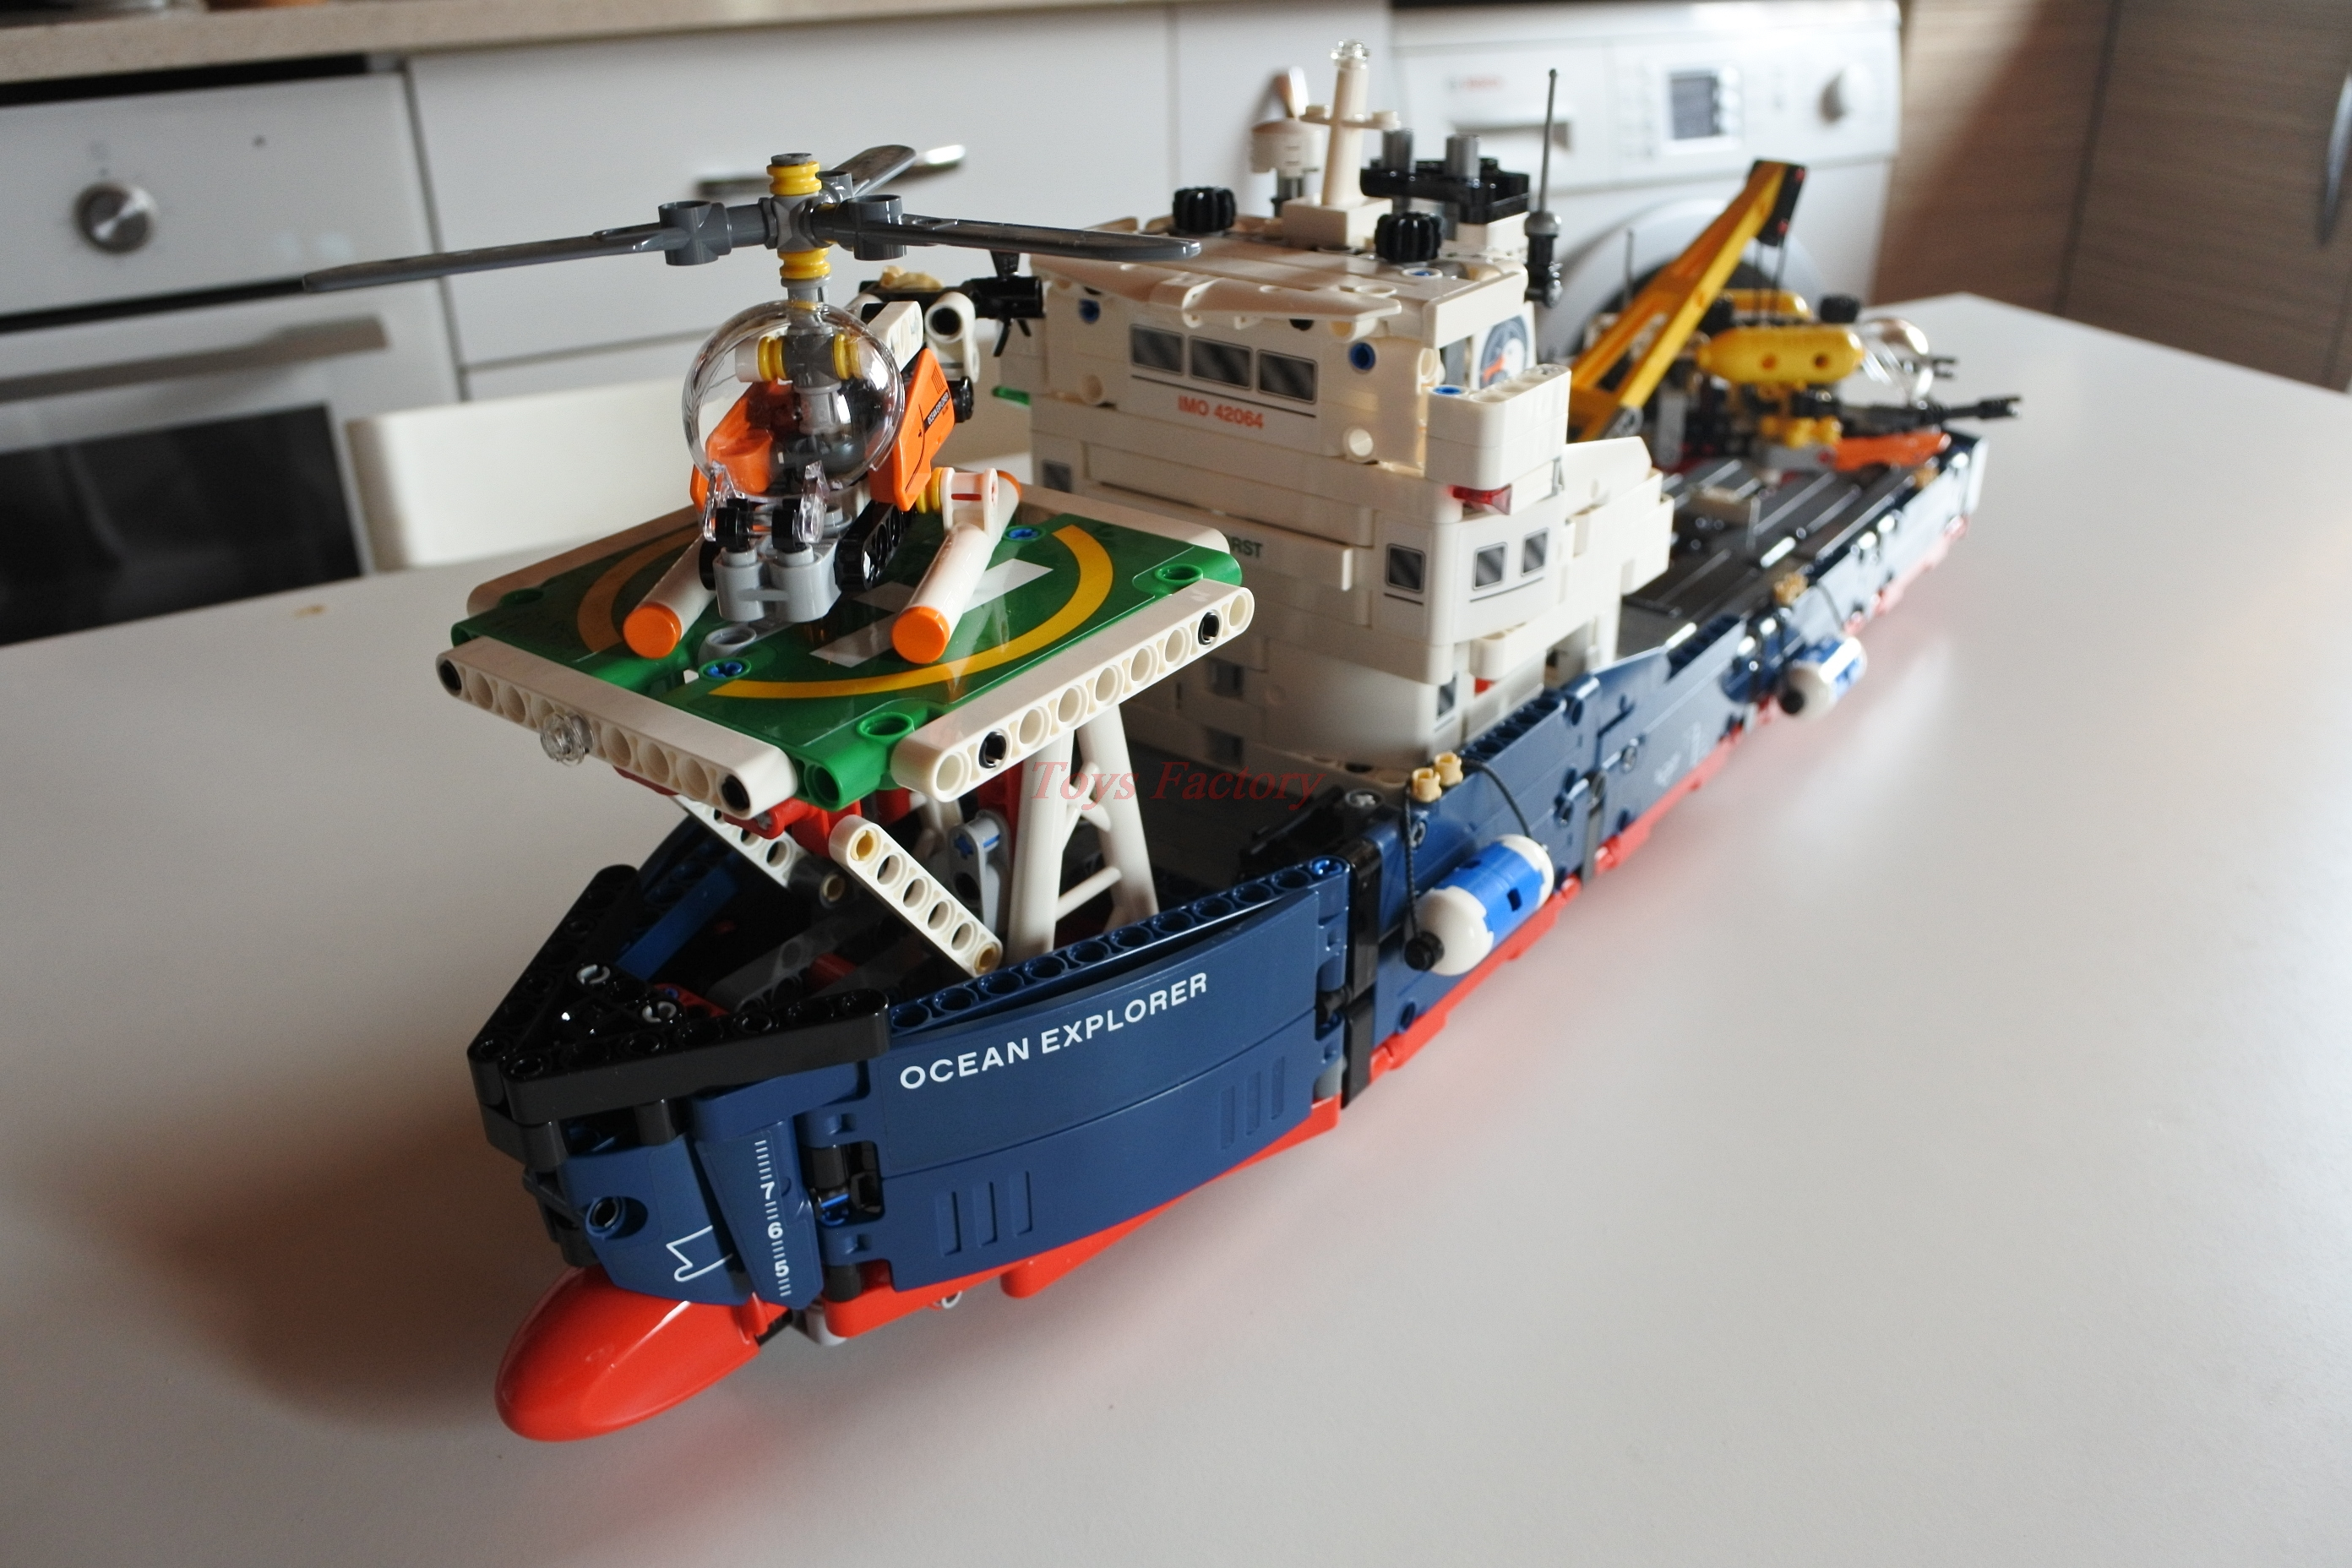 1347pcs Techinic 2in1 Ocean Explorer 20034 Diy Model Ships Lego 42064 Technic Helicopters Building Kit Blocks Gifts Toys Sets Compatible With